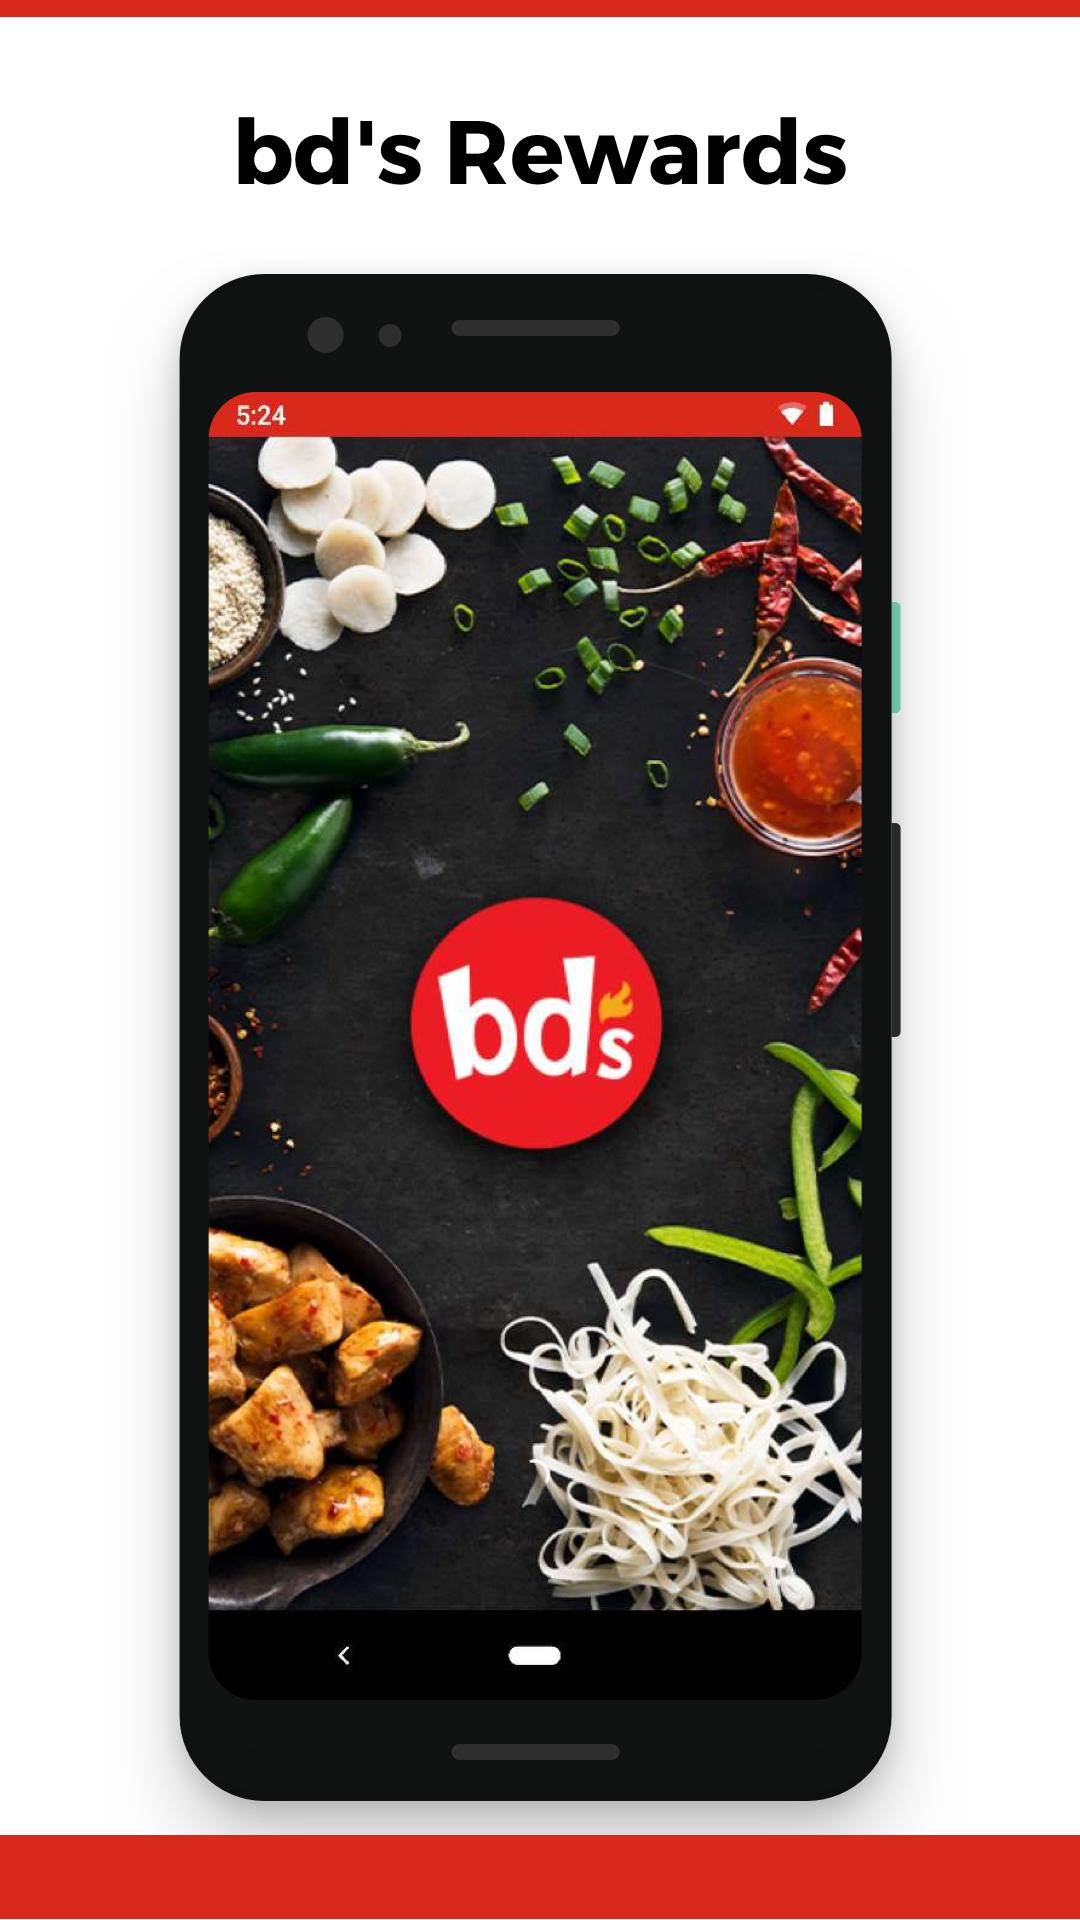 bd mongolian grill locations